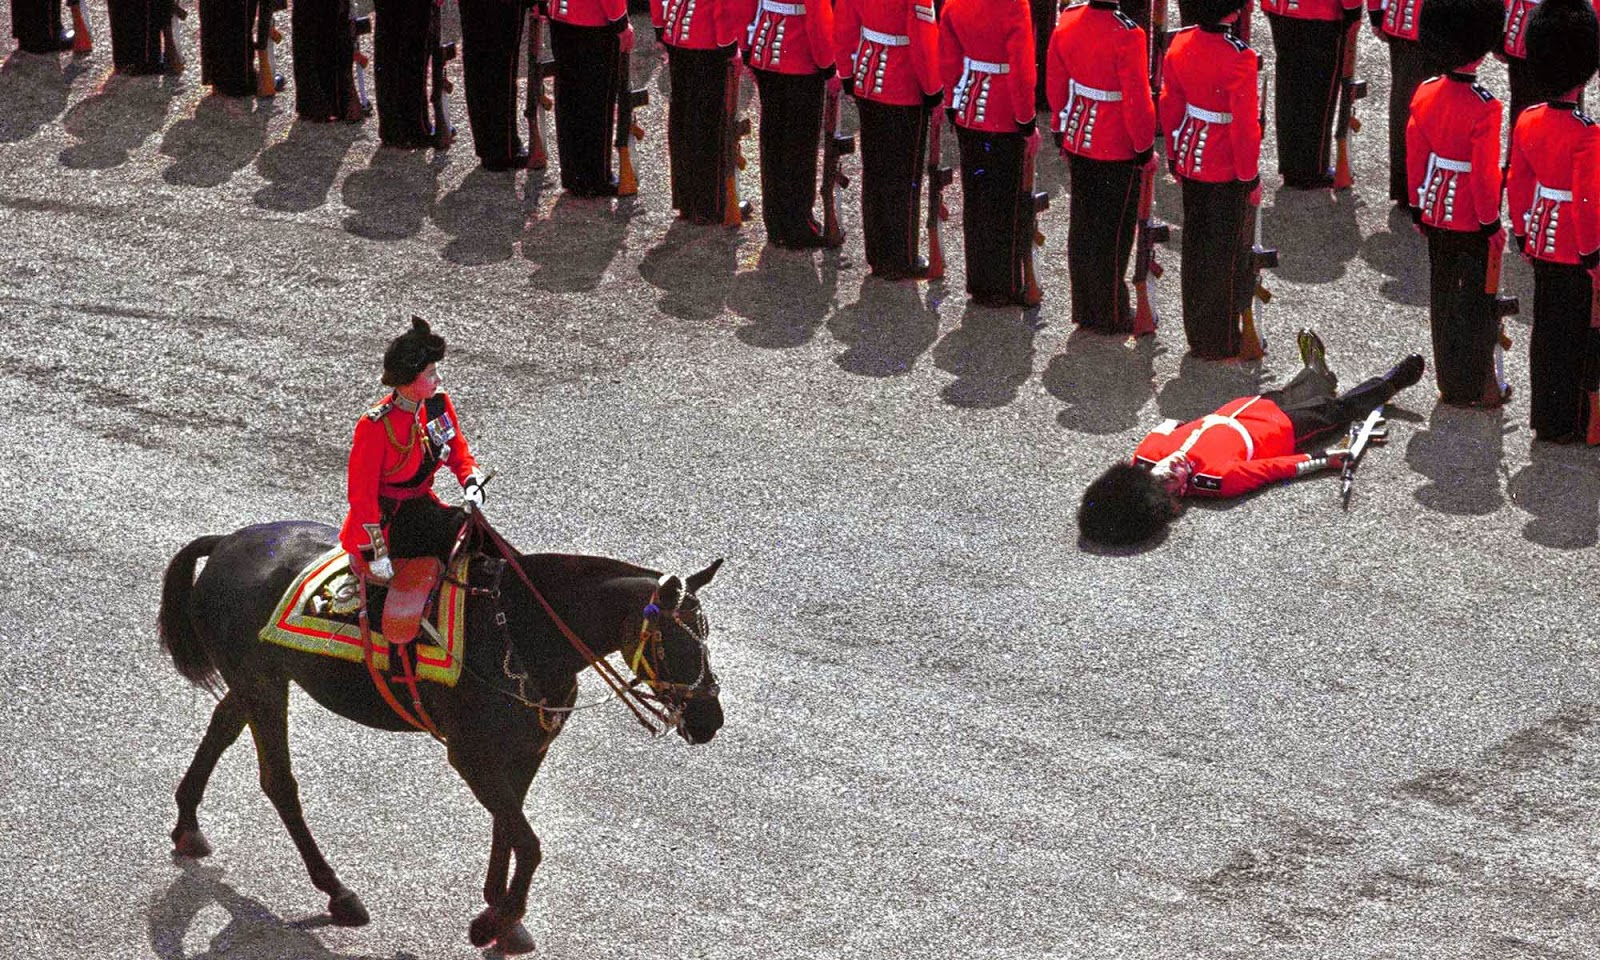 A soldier faints from the heat at a crucial moment during the Trooping the Colour to mark Queen Elizabeth's birthday in 1970.